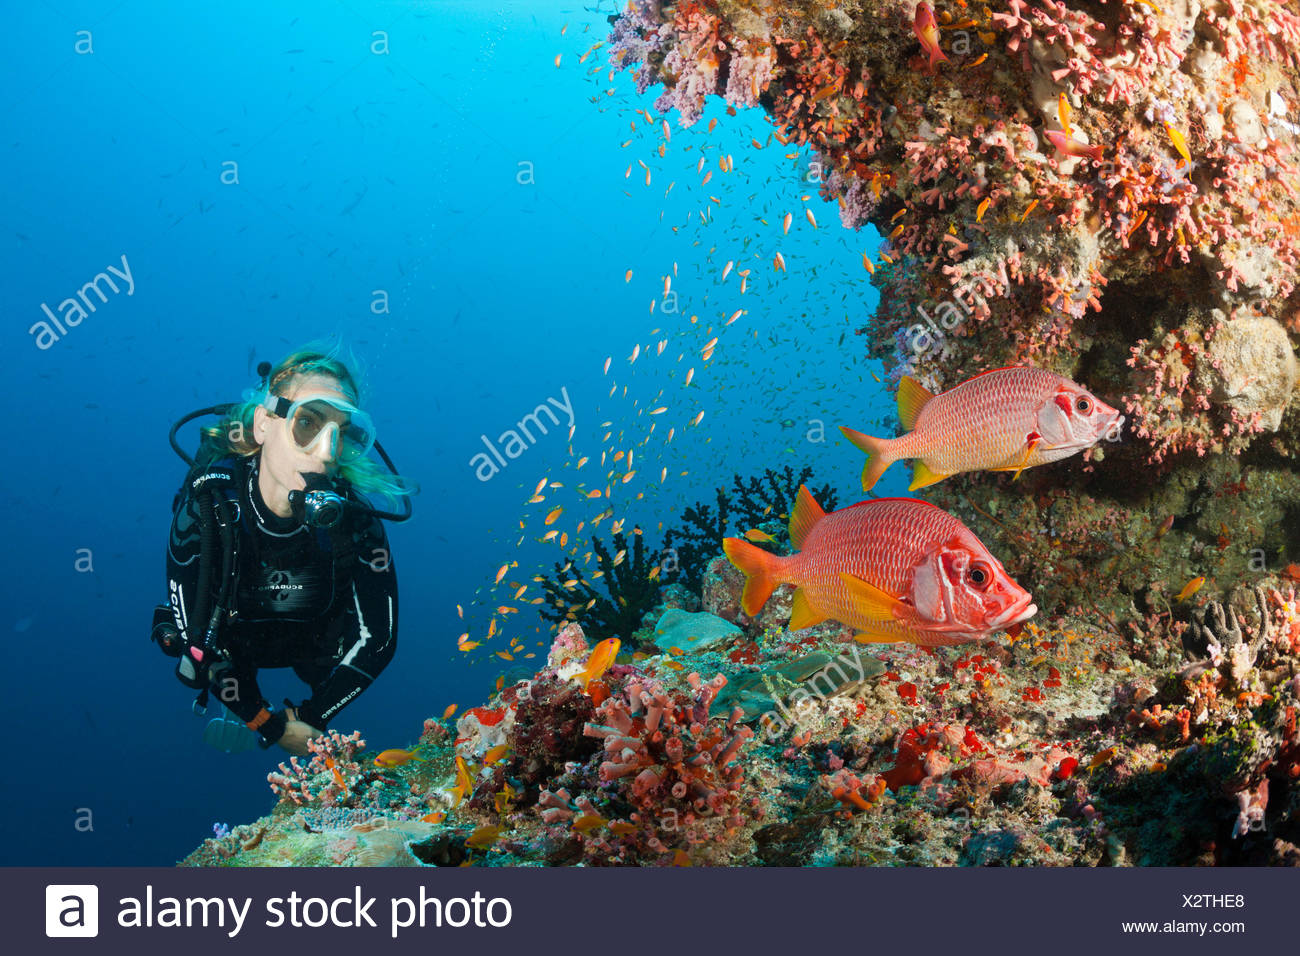 Scuba Diver on Coral Reef, Felidhu Atoll, Maldives - Stock Image